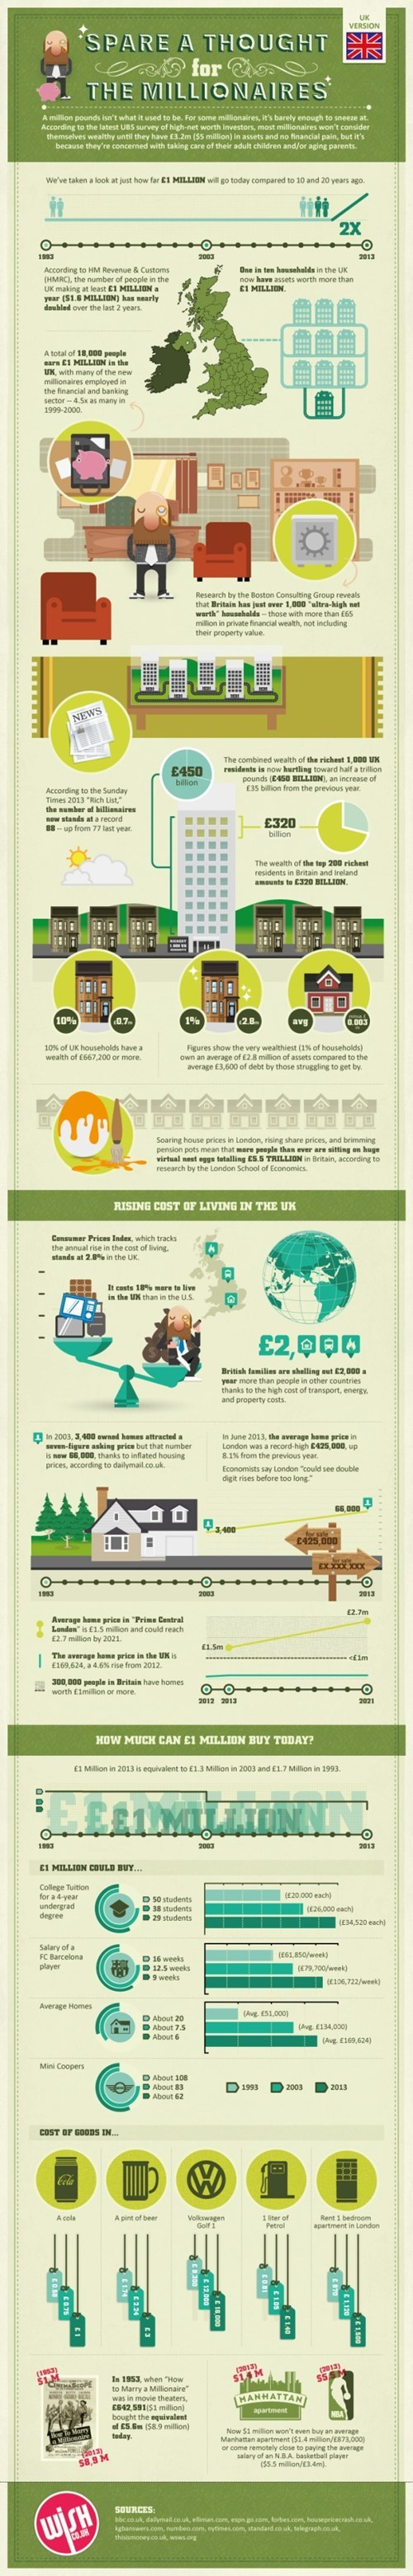 infographic money UK